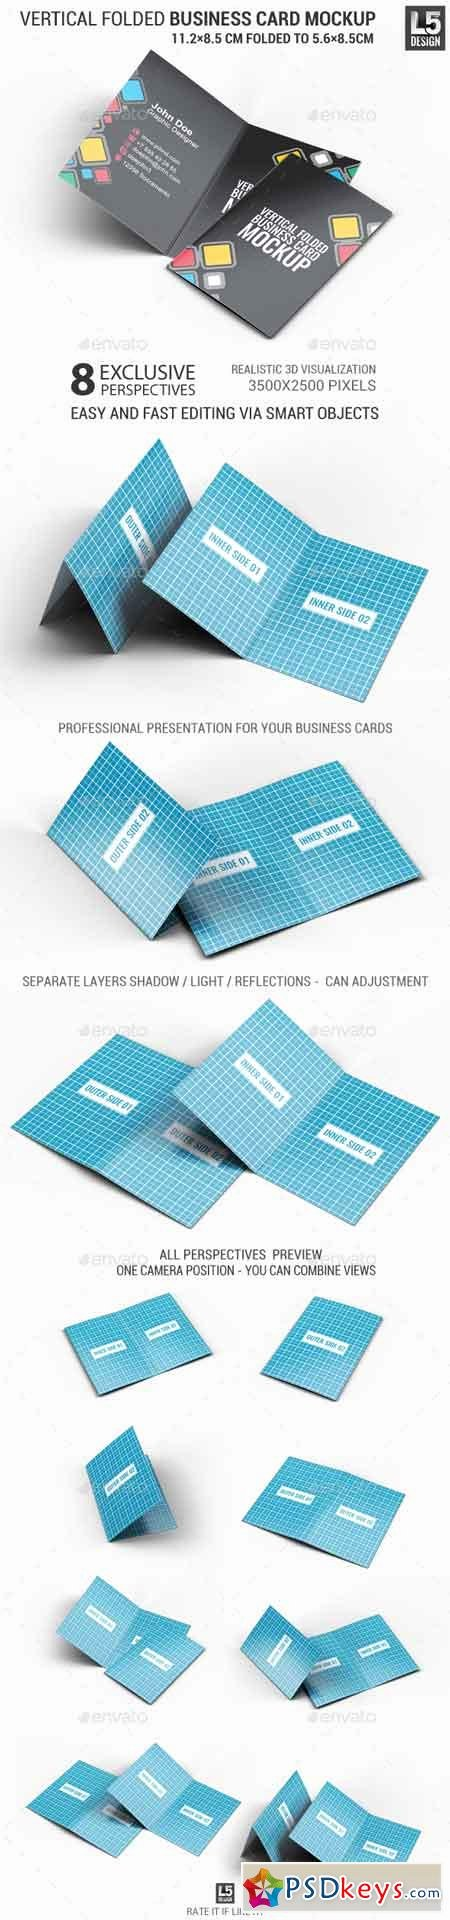 Folded Business Cards Template Fresh Vertical Folded Business Card Mock Up Free Download Shop Vector Stock Image Via